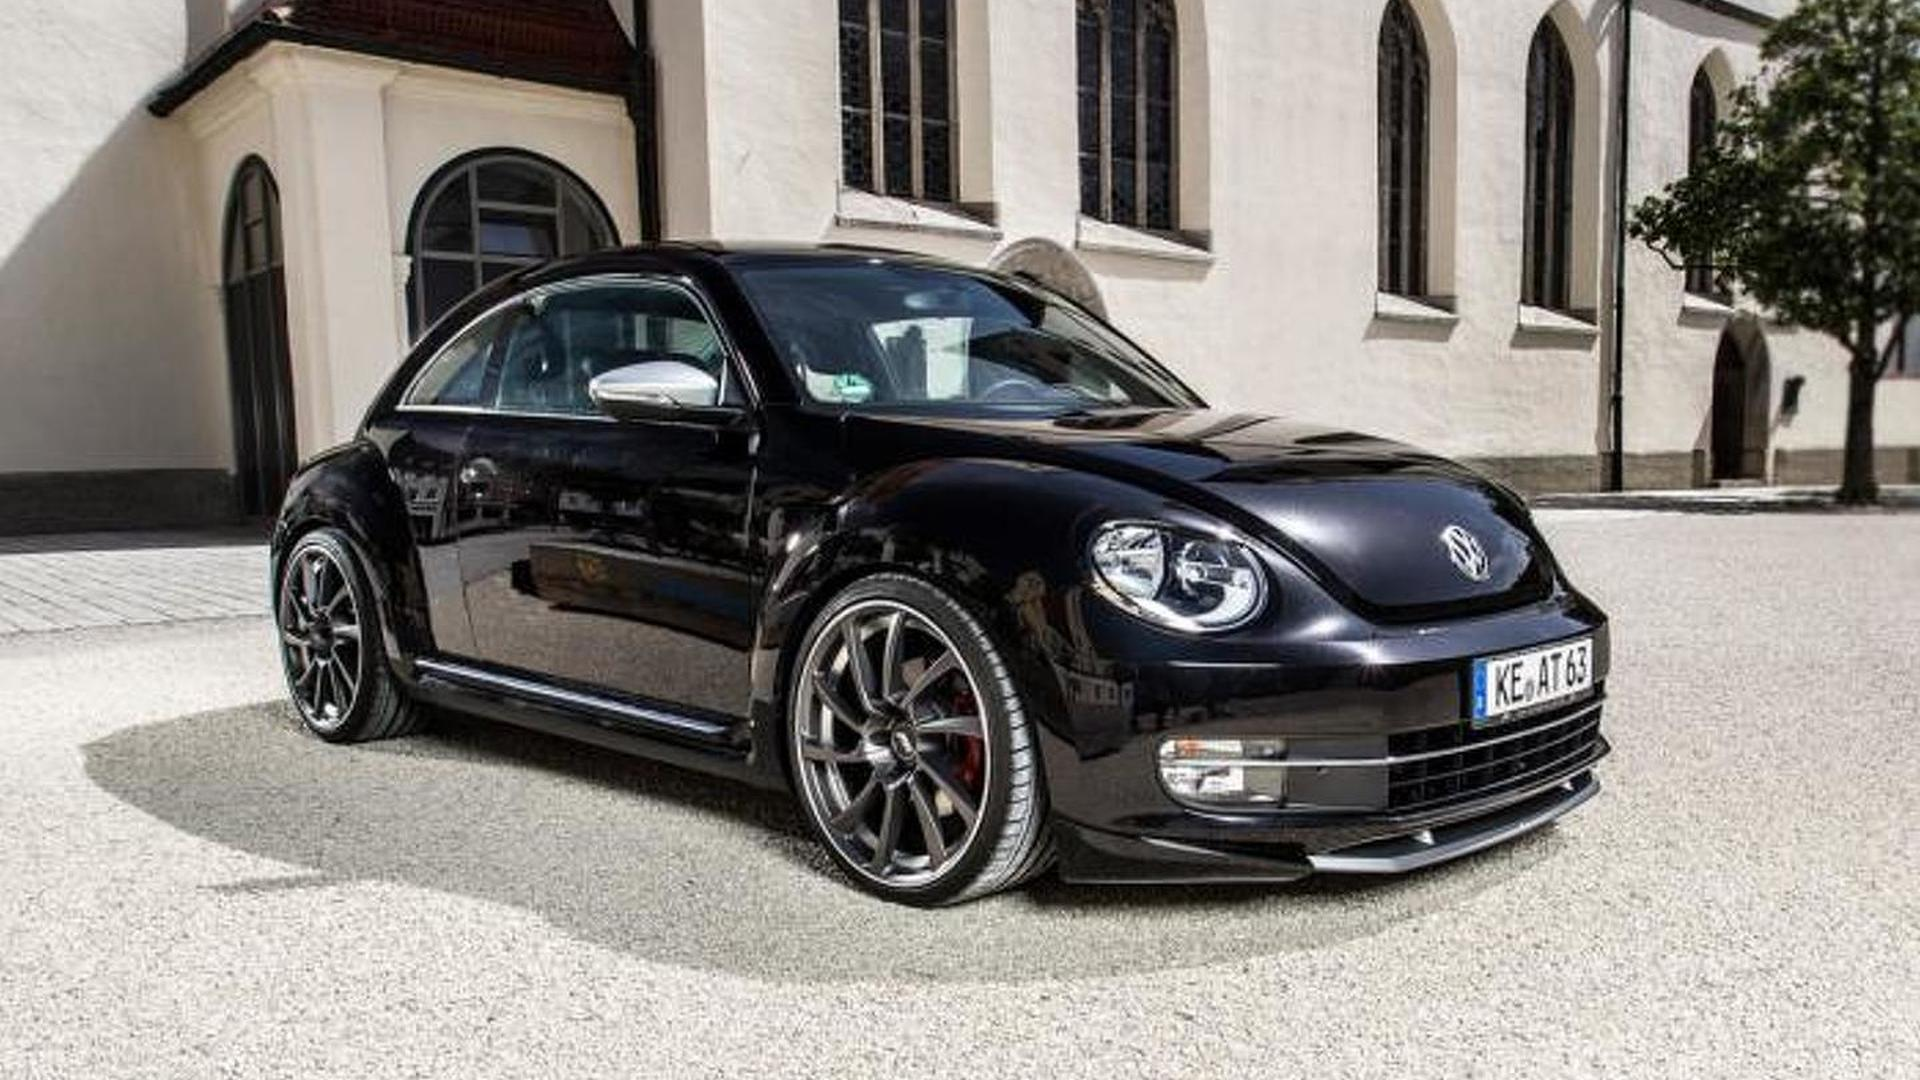 ABT updates its tuning program for the Volkswagen Beetle